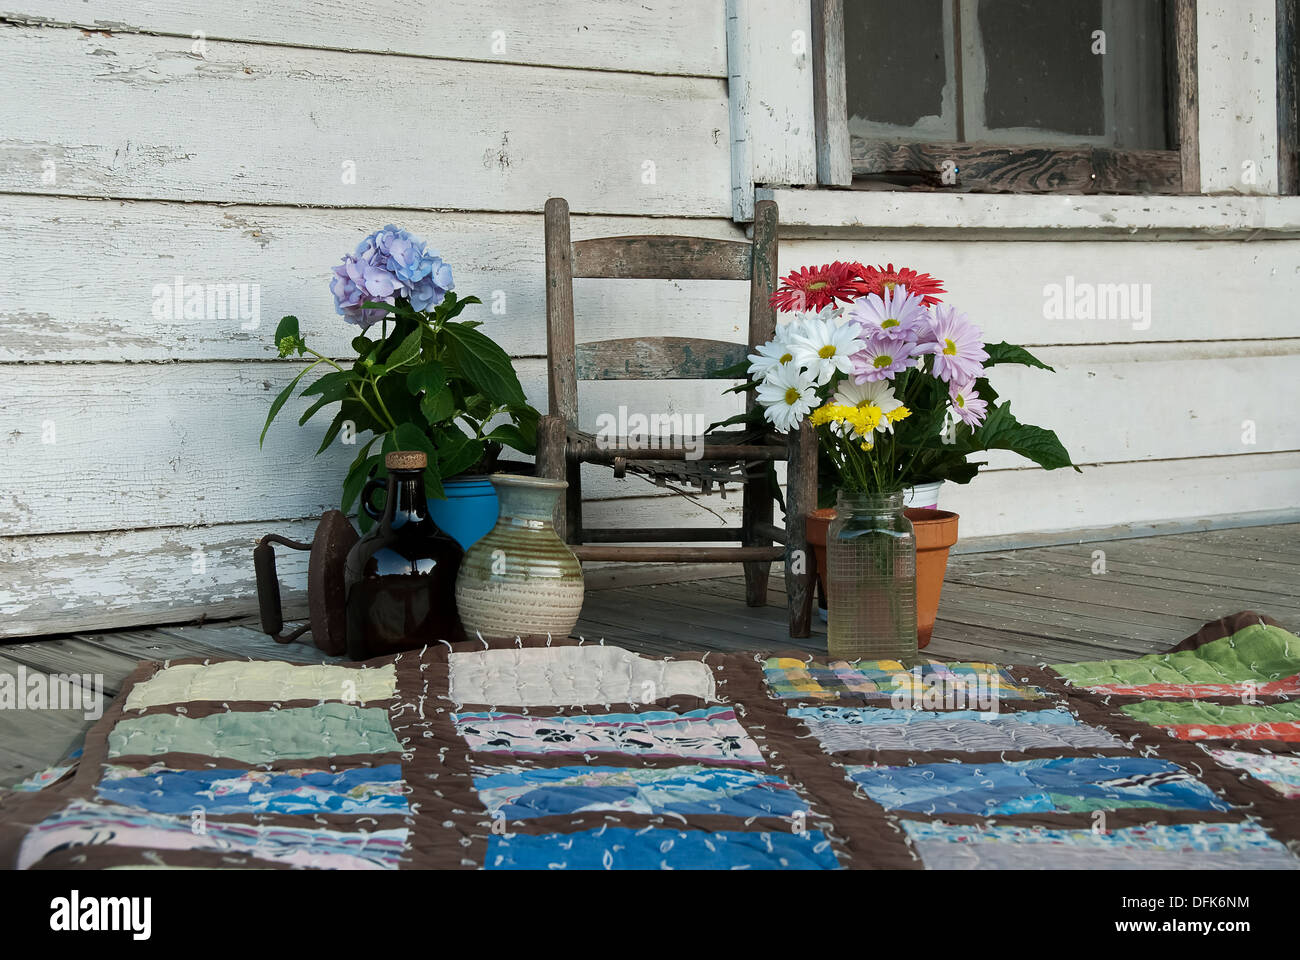 An old chair, vase, jug, flowers and a quilt on a rustic porch. - Stock Image